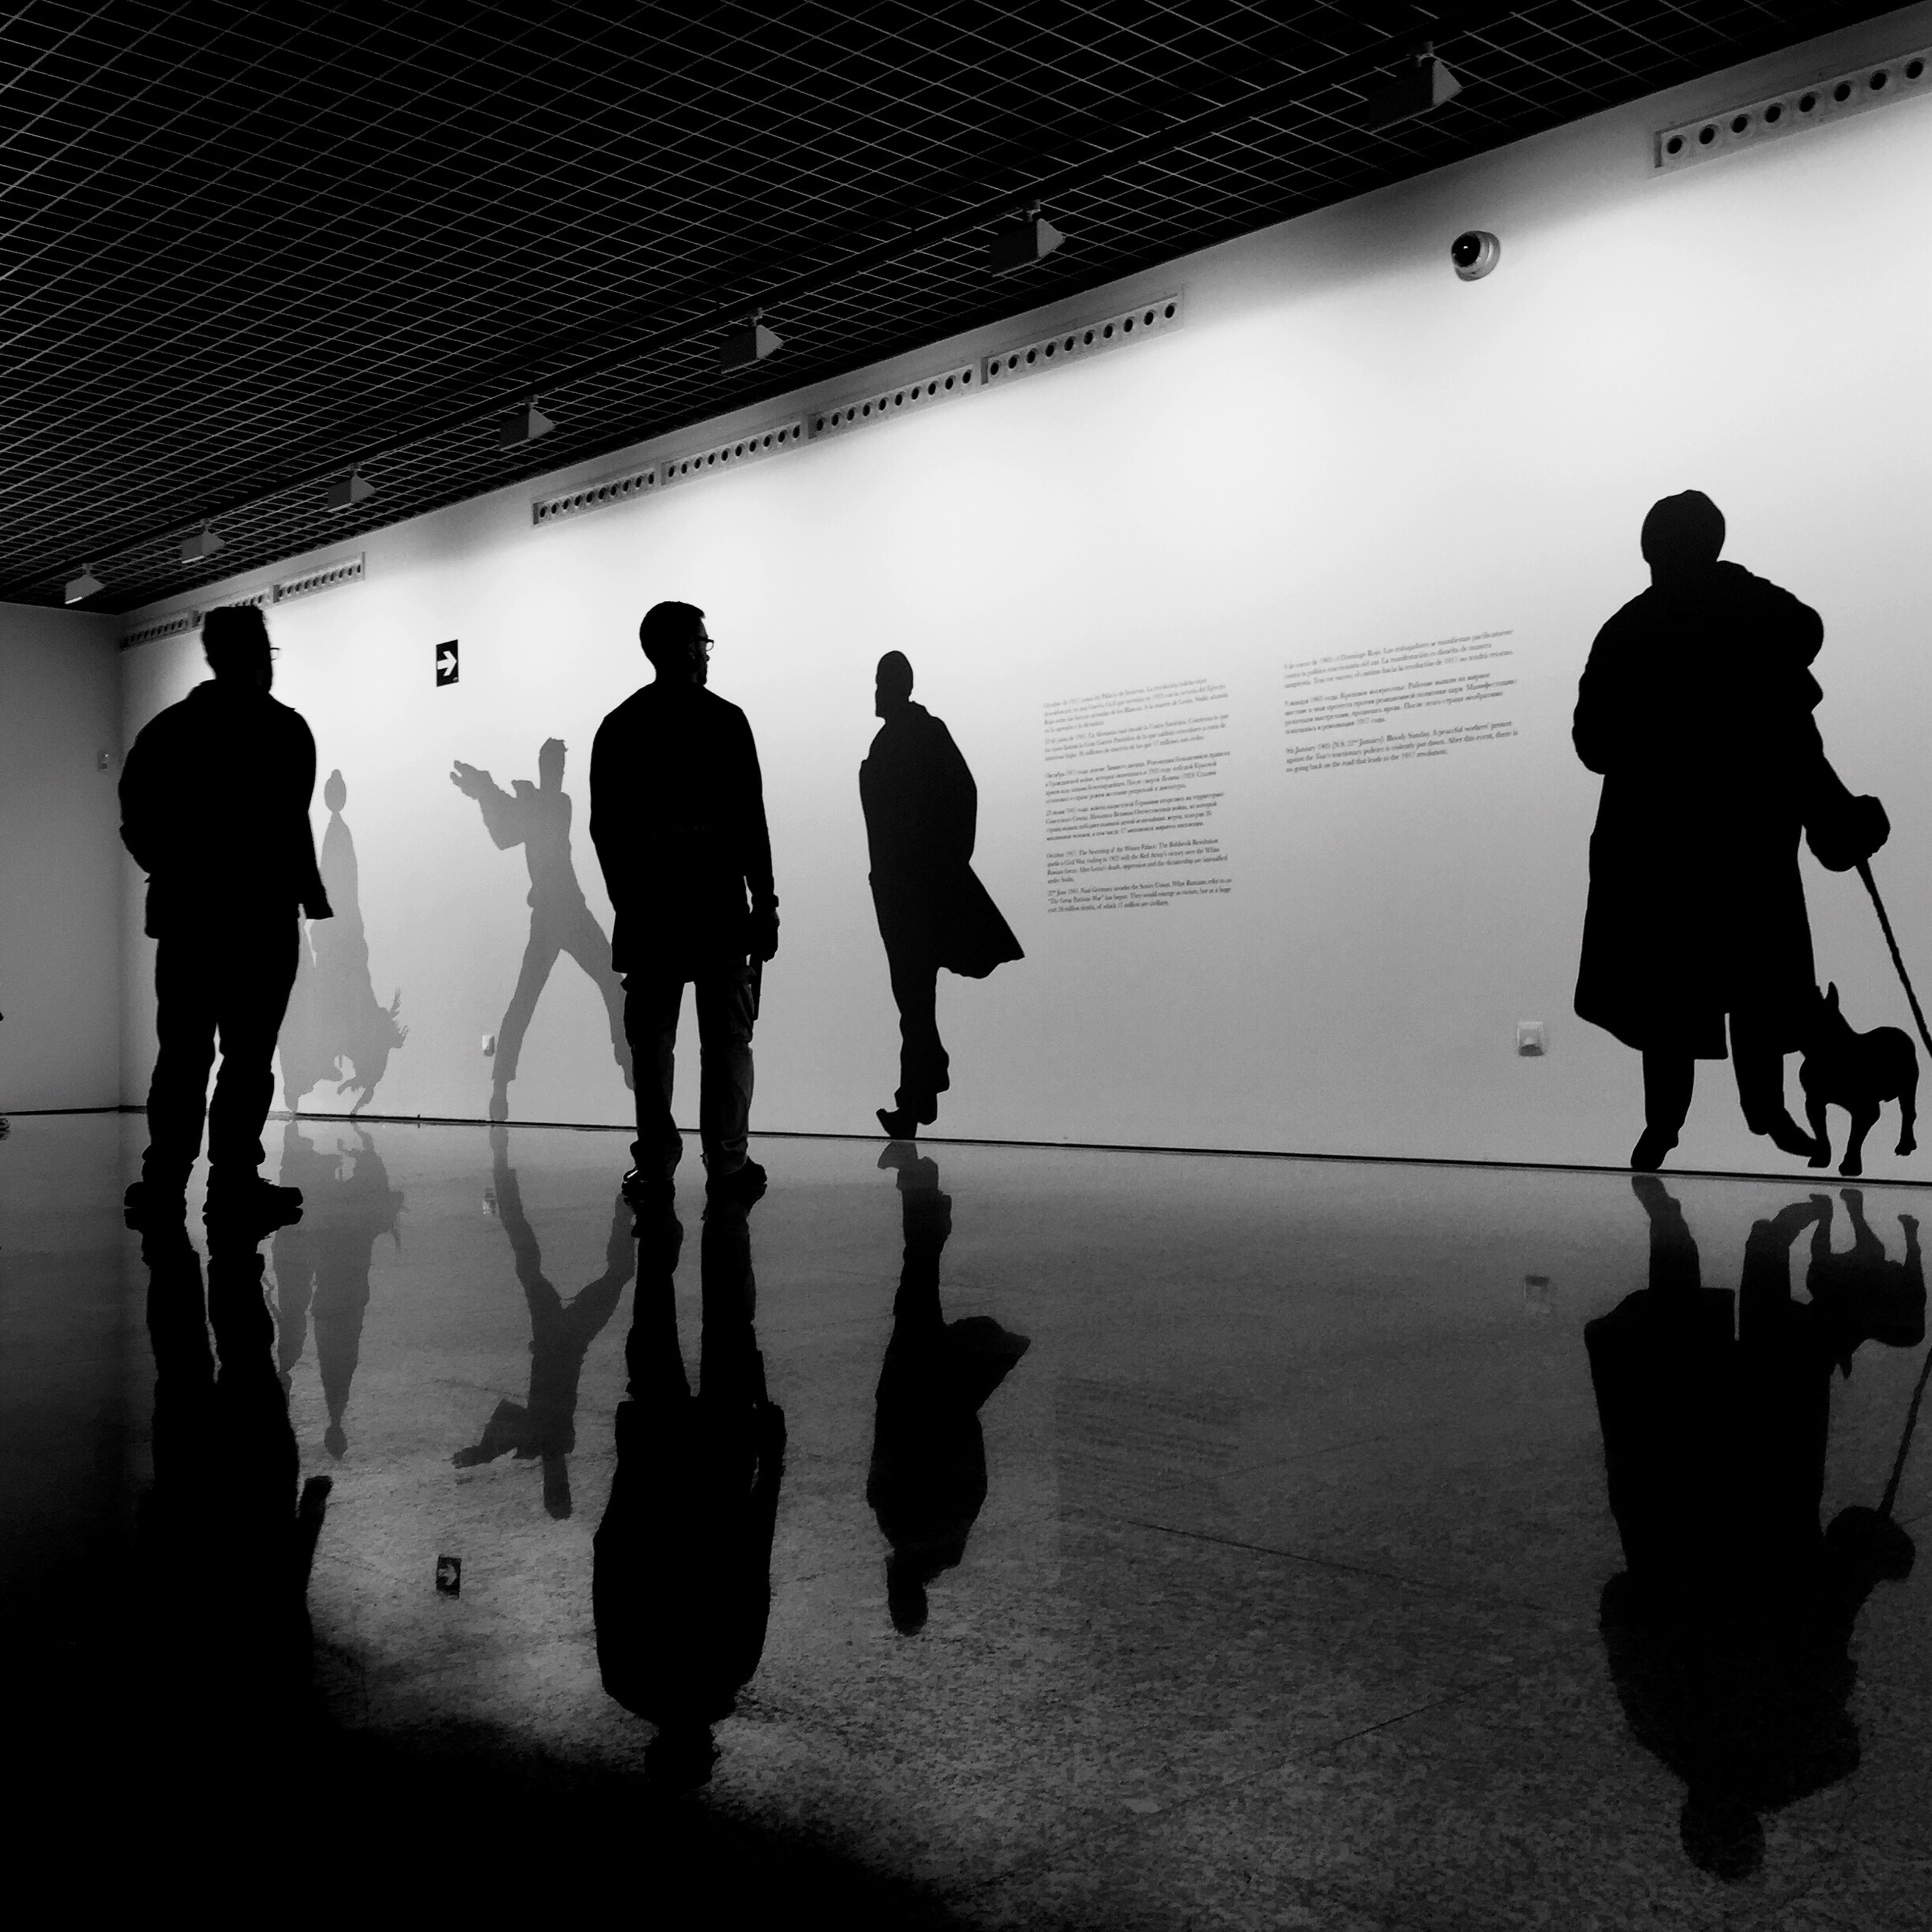 men, indoors, lifestyles, walking, person, standing, full length, rear view, silhouette, leisure activity, flooring, shadow, tiled floor, medium group of people, togetherness, railroad station, day